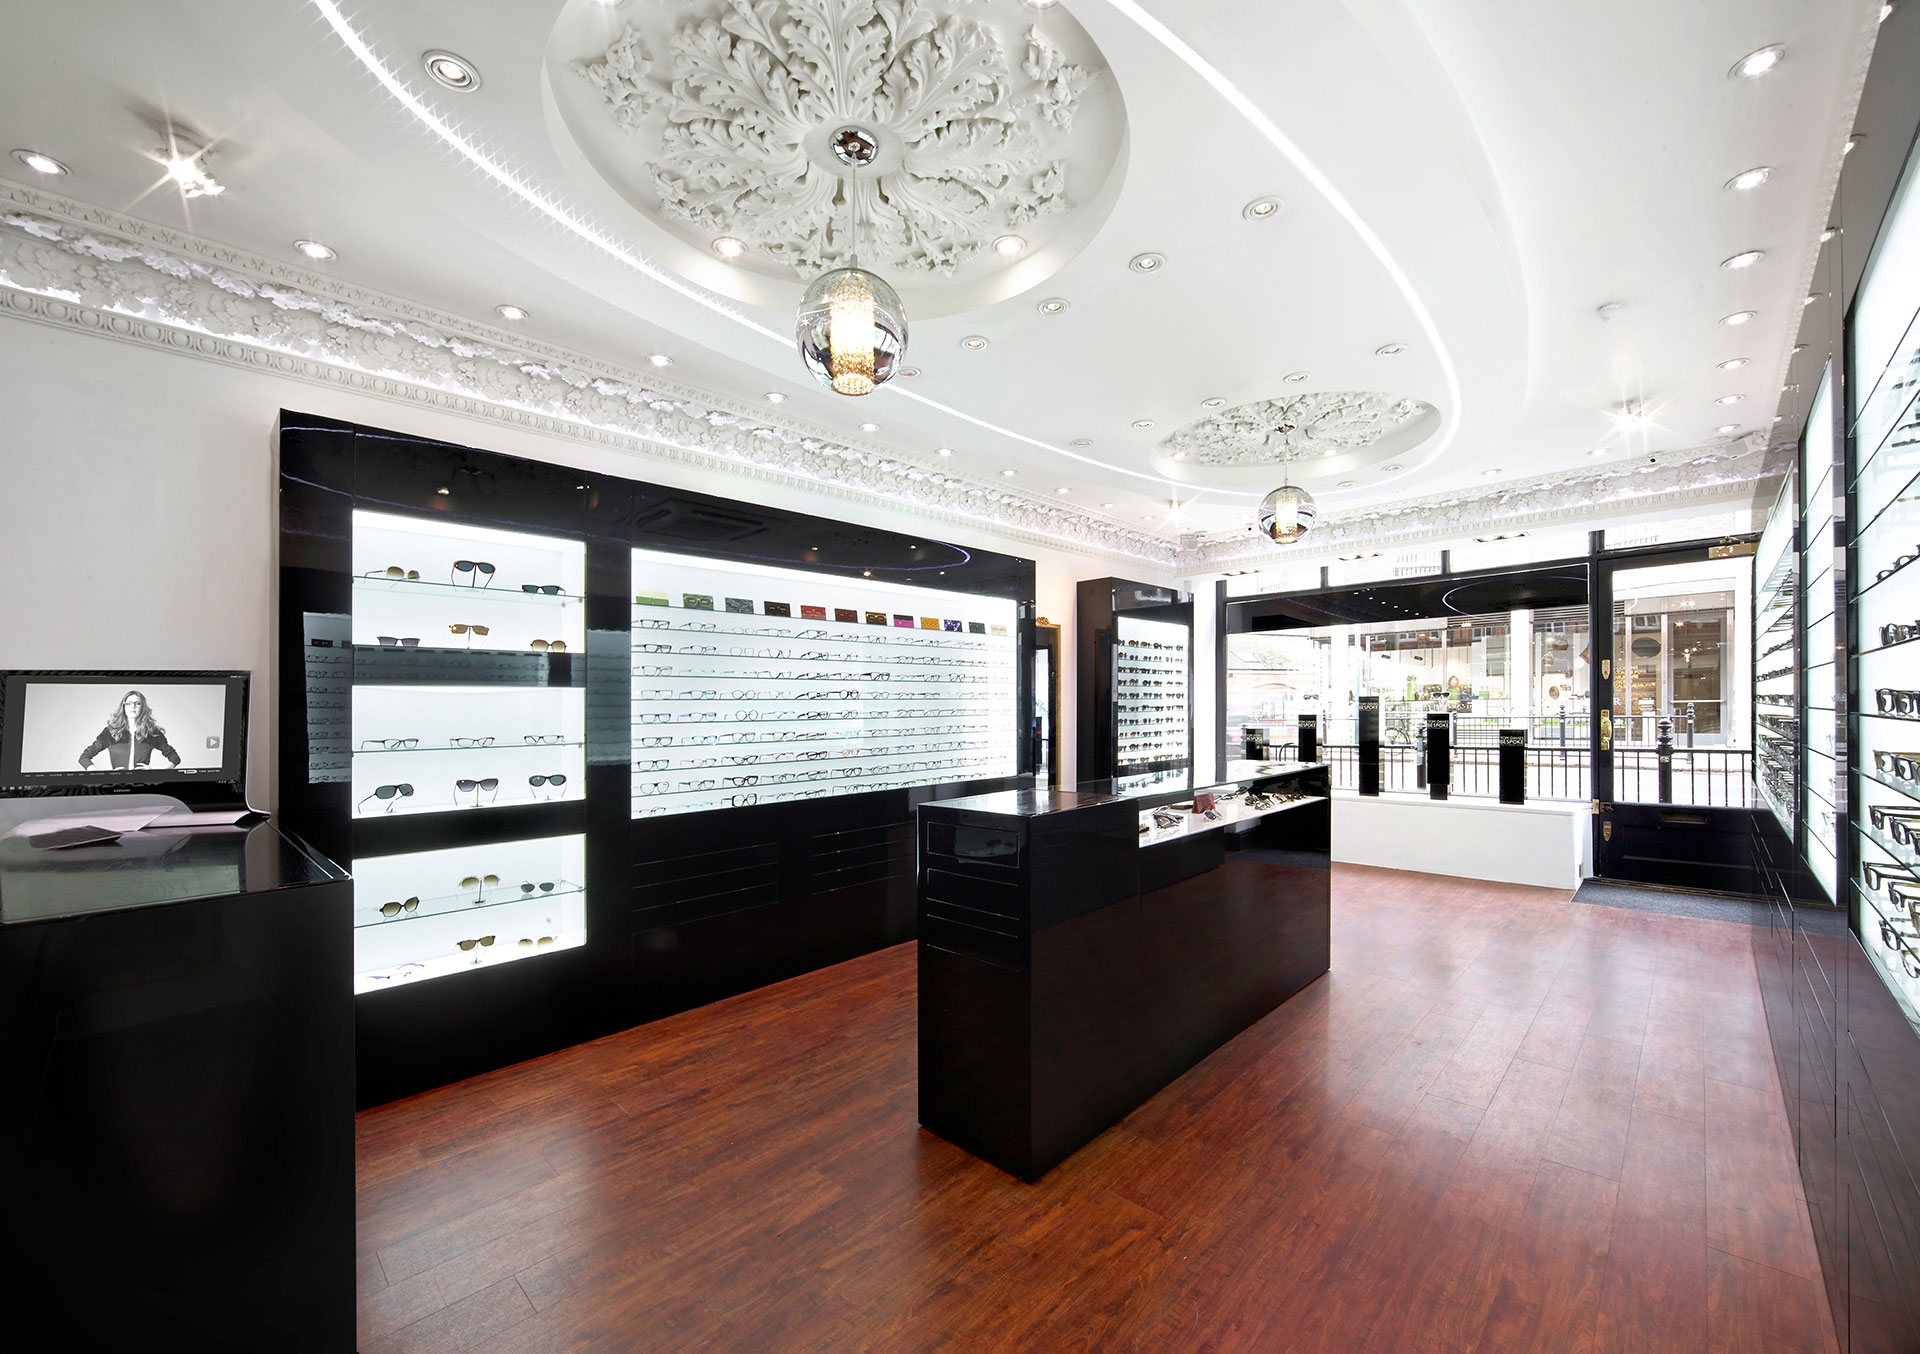 Shop floor of Tom Davies Bespoke Opticians in Sloane Square, Chelsea